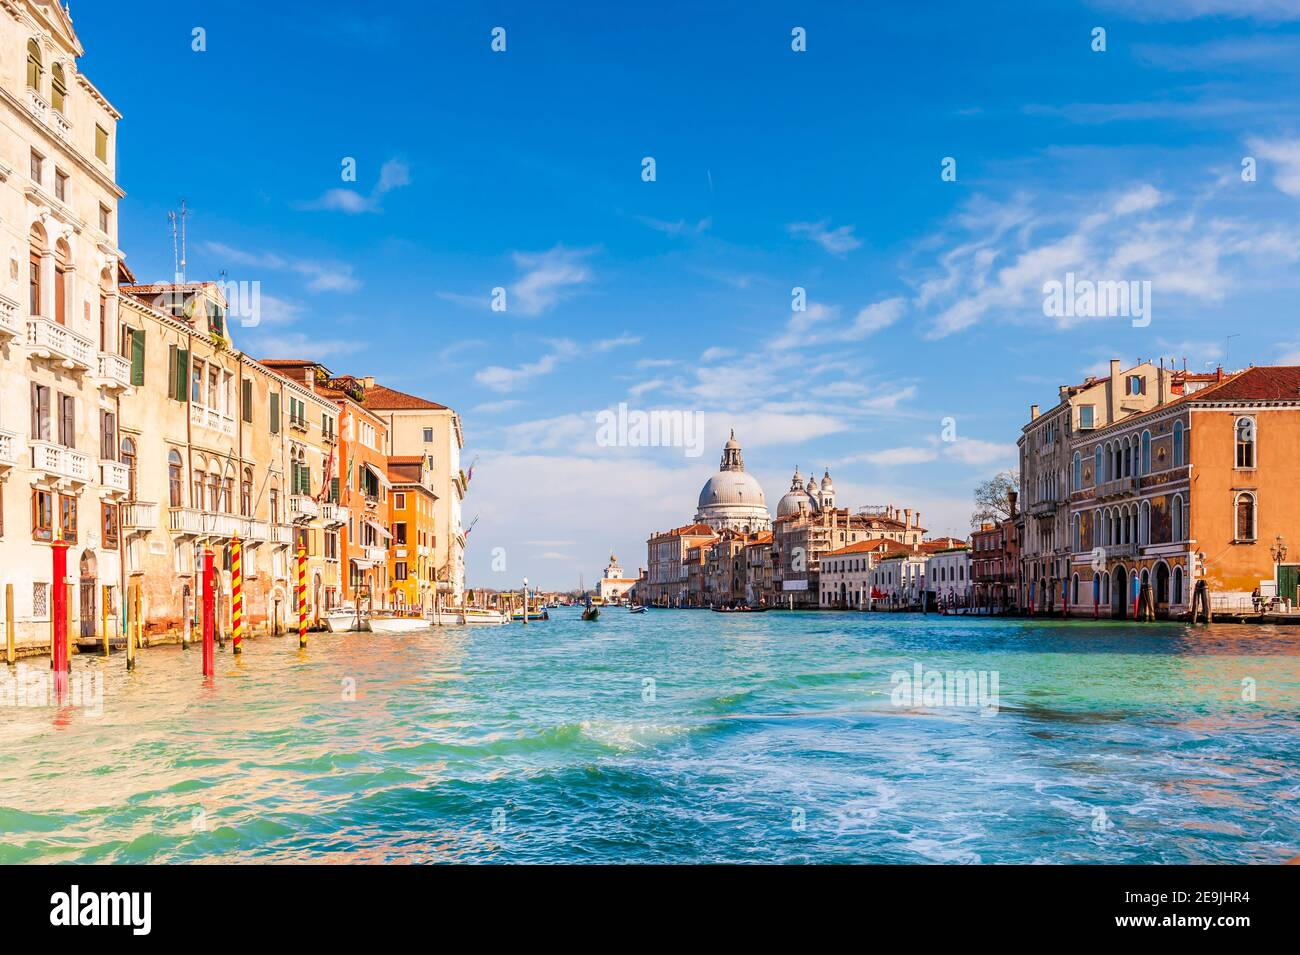 The Grand Canal and its facades and the Basilica of Santa Maria della salute in the background in Venice in Veneto, Italy Stock Photo